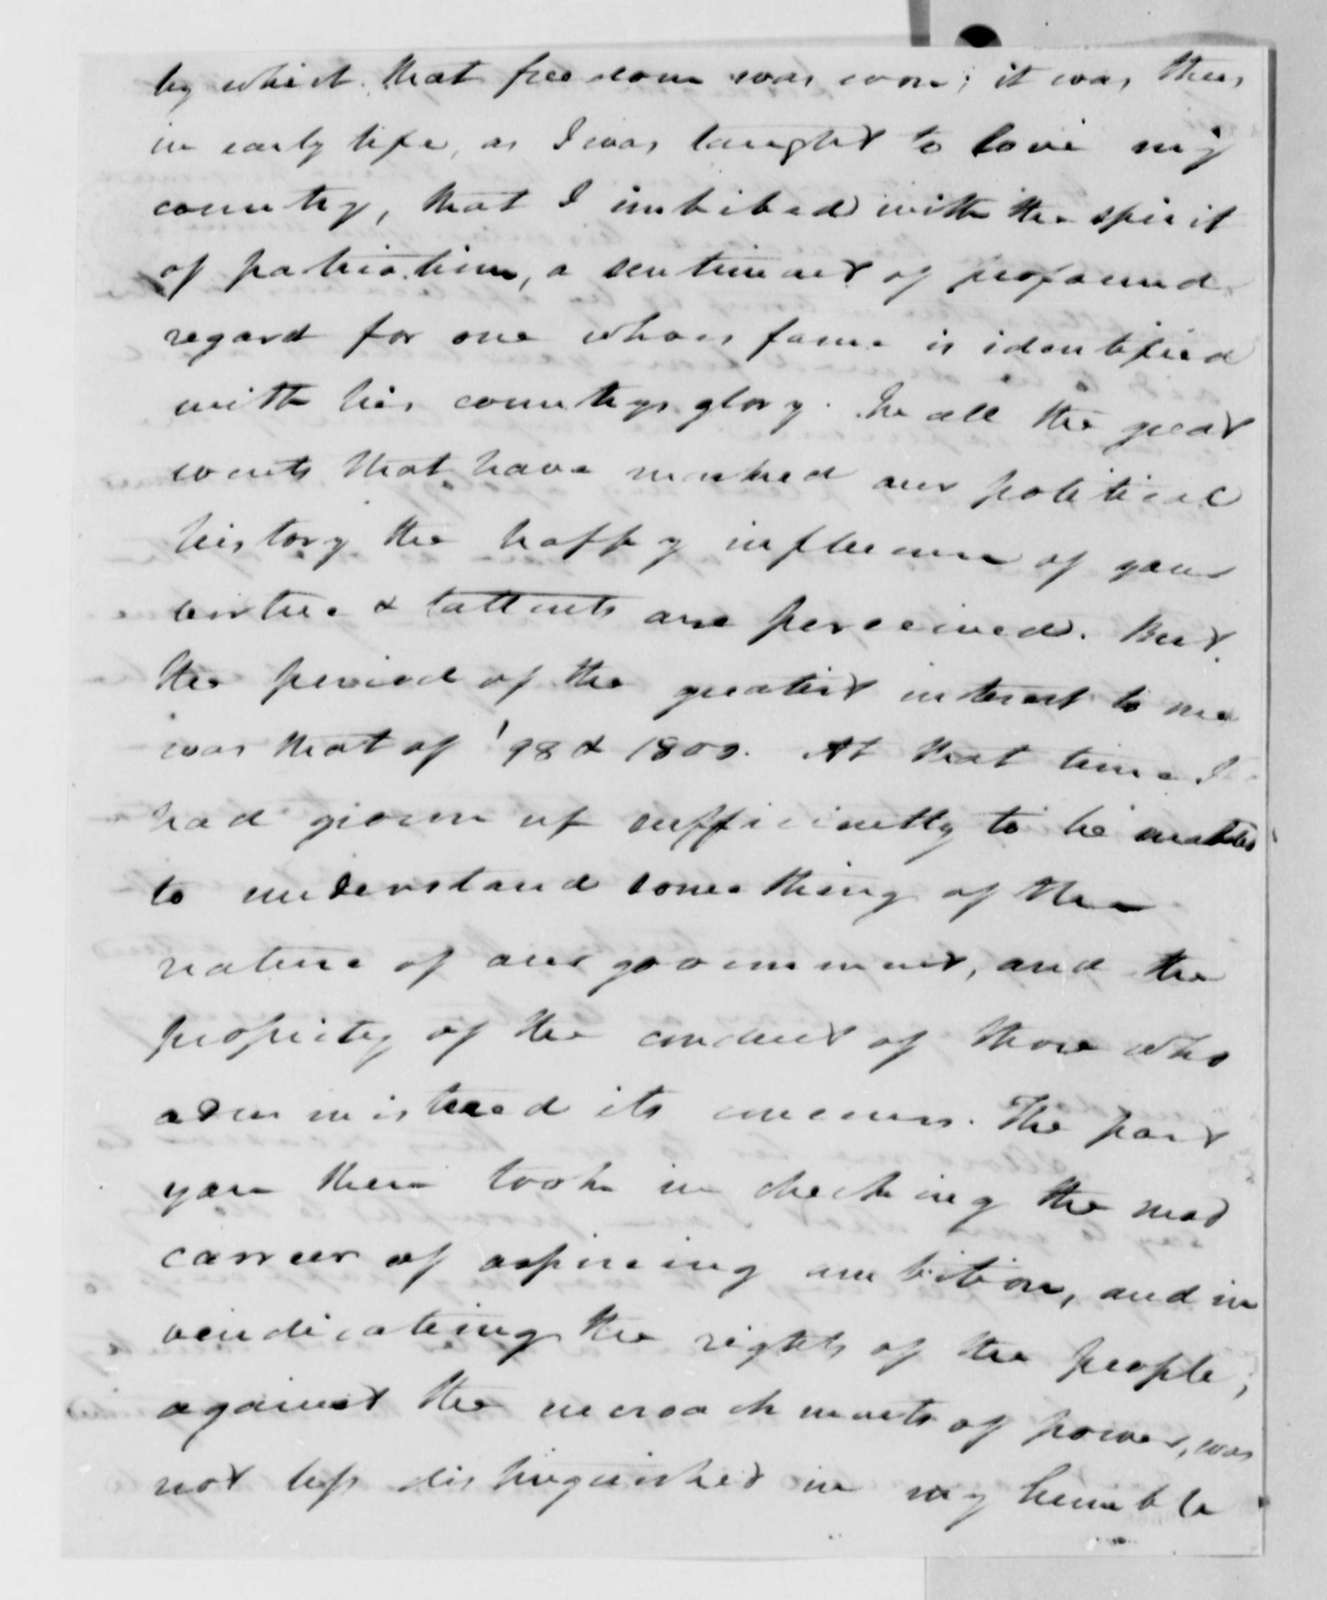 W. T. Barry to Thomas Jefferson, June 15, 1822, with Circular on Public Education